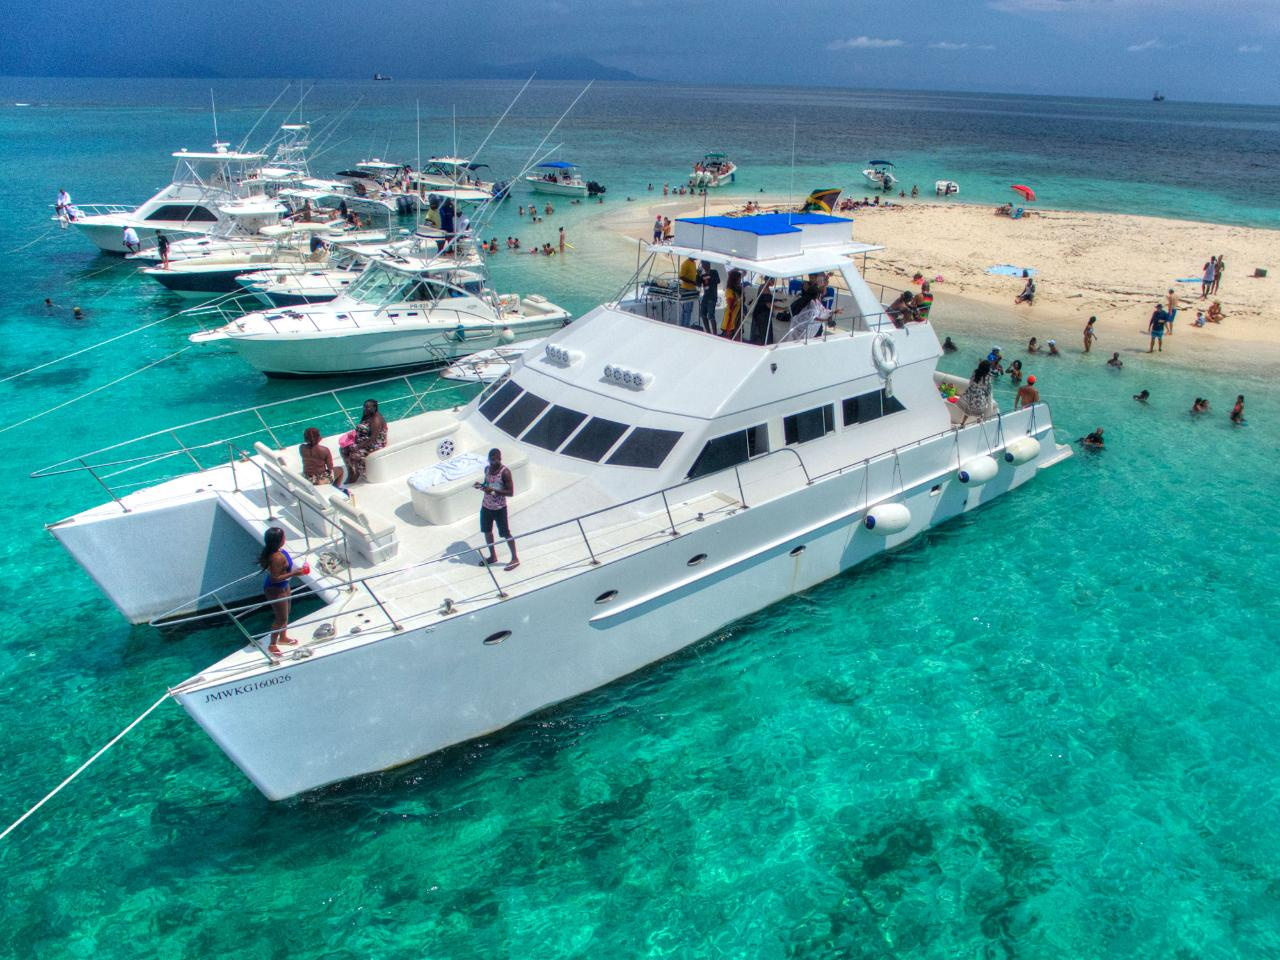 PRIVATE CHARTER - Loose Cannon 69 ft Catamaran DAY CHARTER (4 hours between 8am - 5pm)